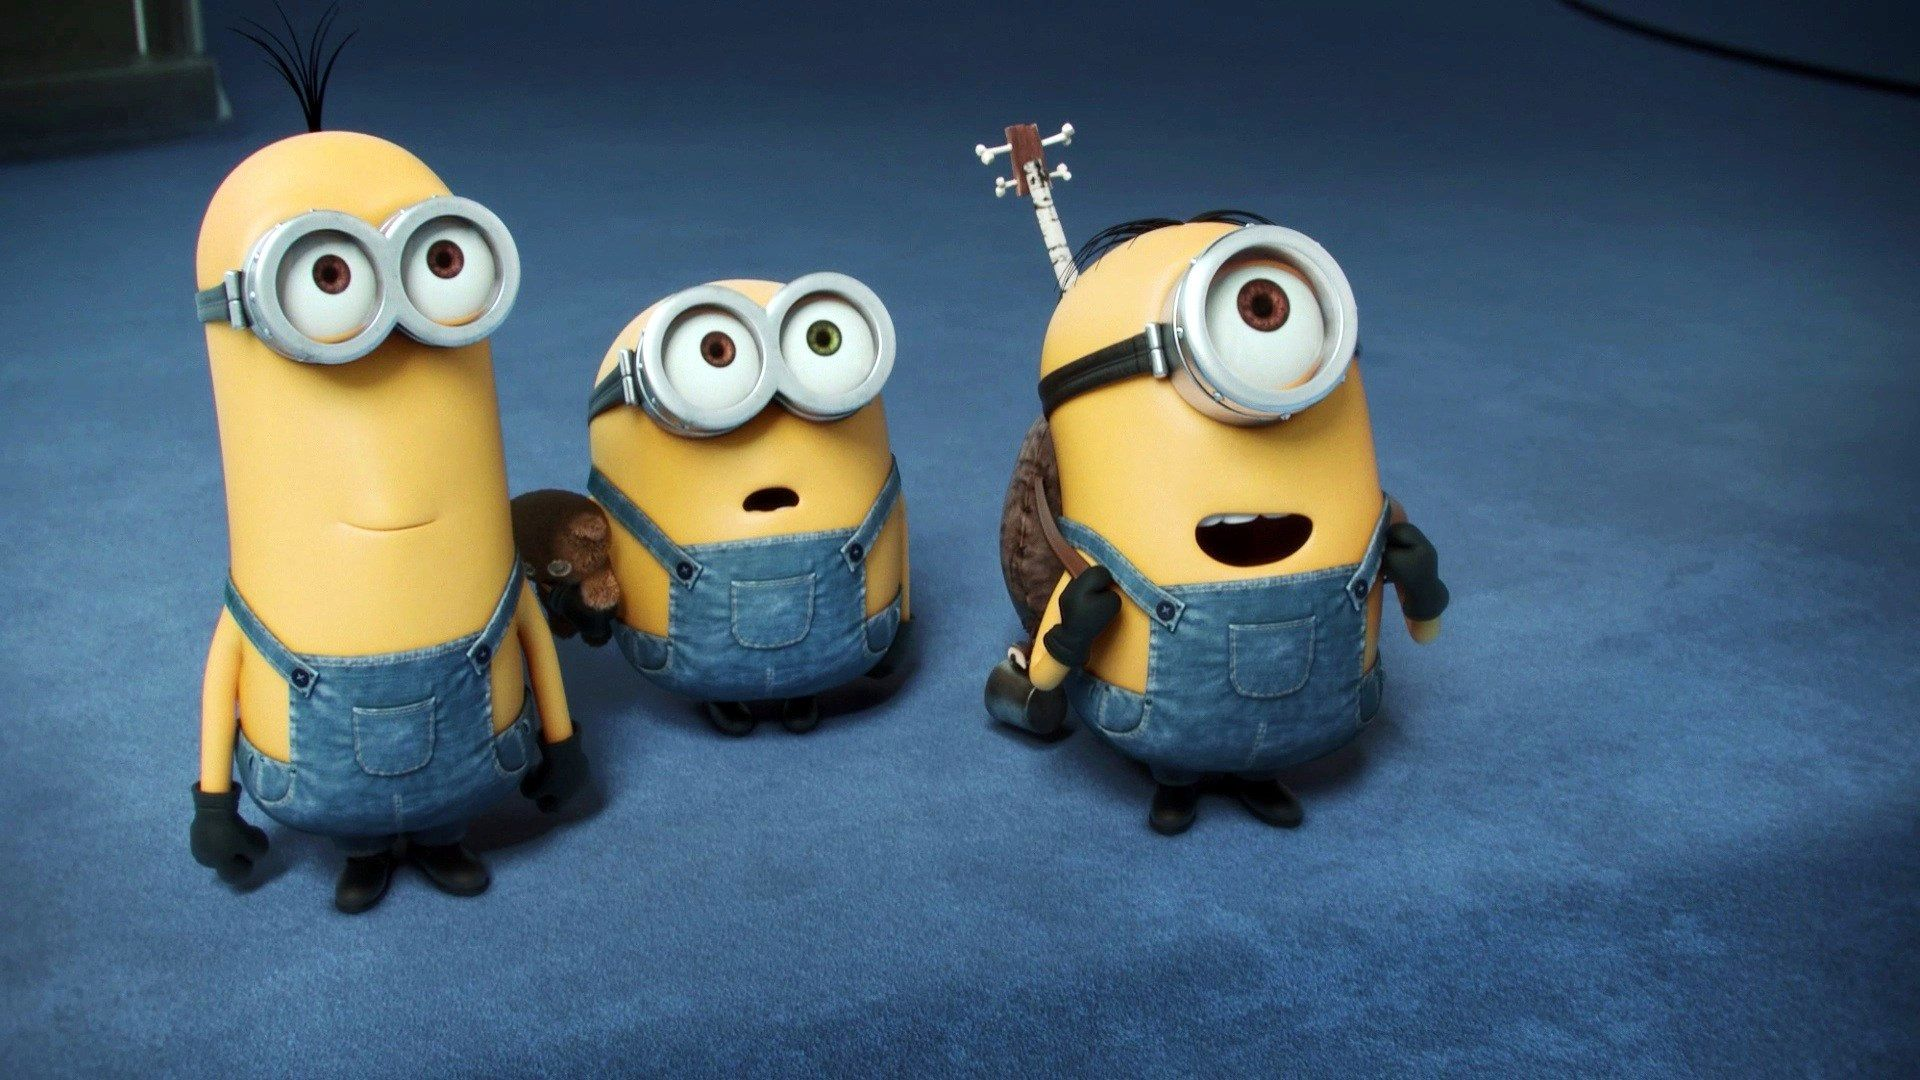 1920x1080 Minions Pc Wallpaper Free Download Hd Minions Wallpaper Minions Minion Art